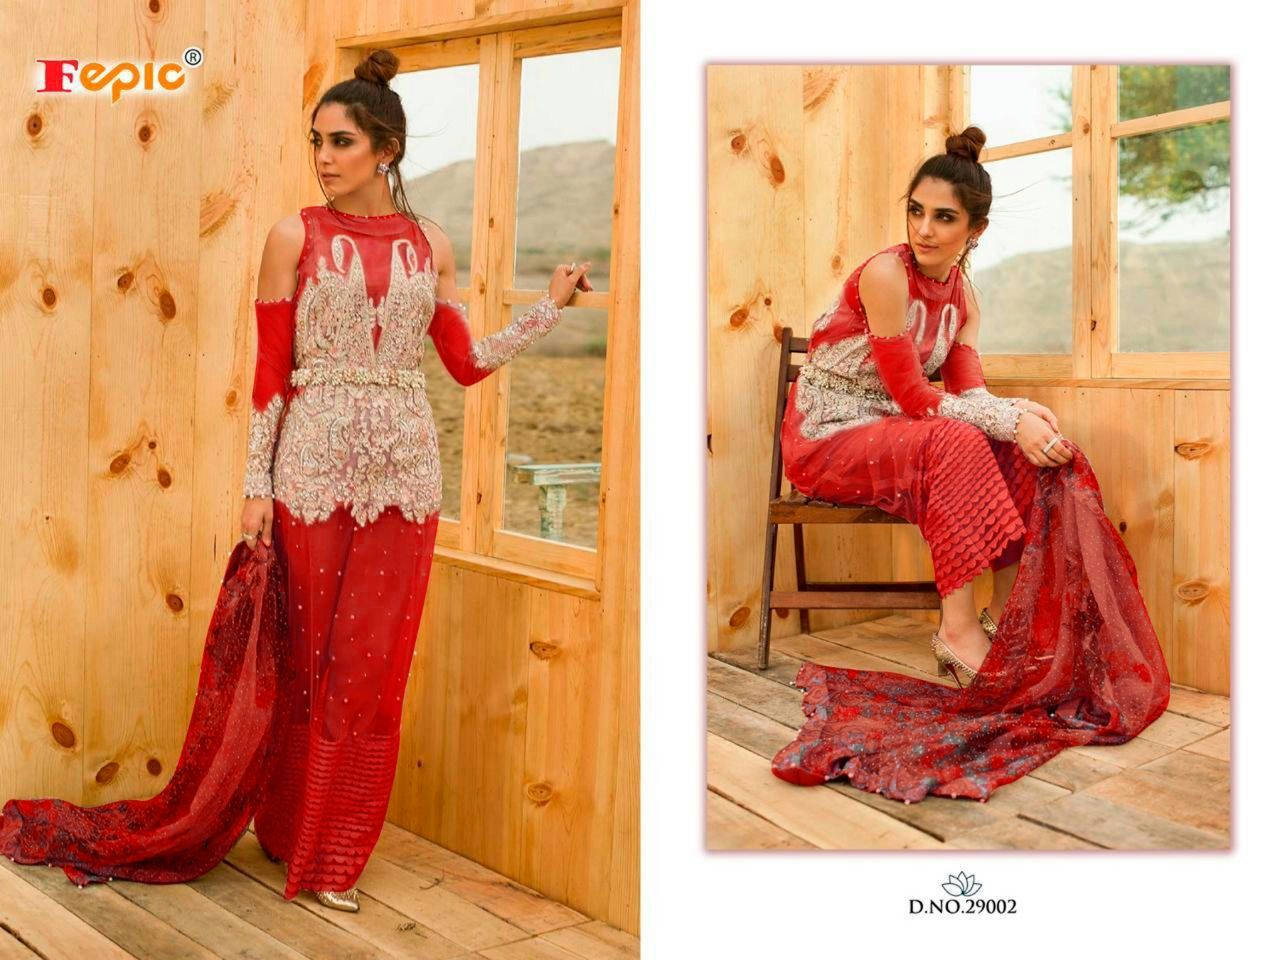 Fepic Rosemeen Crimson - 29002 - Red - Asi - Bponi